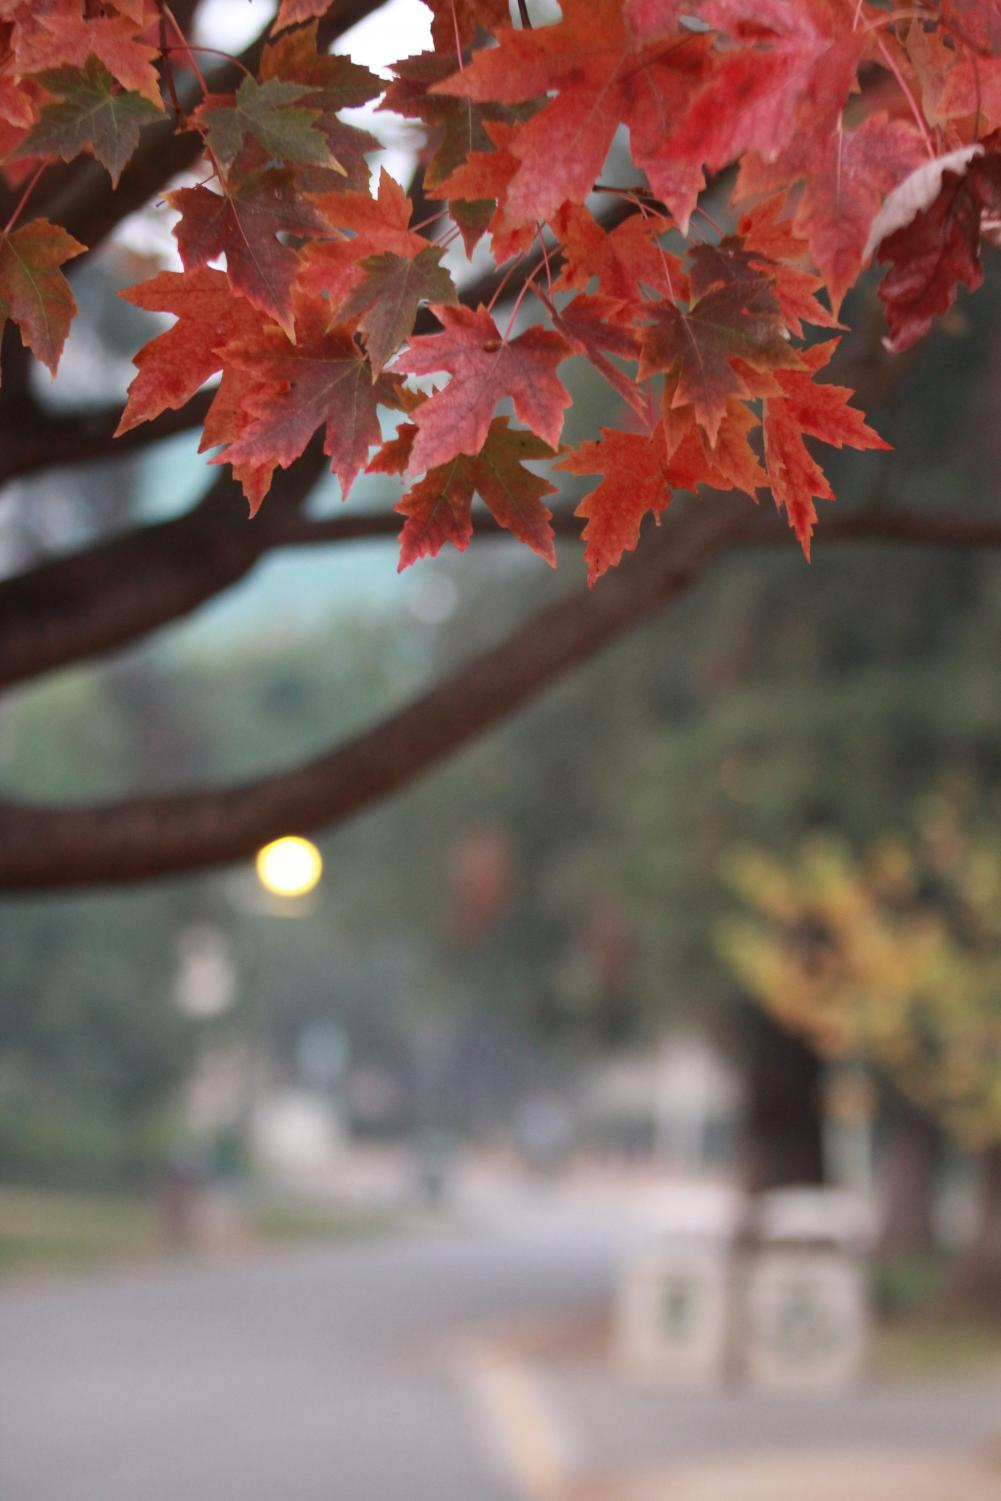 Red+fall+leaves+frame+a+smoky+background+at+Sacramento+State+on+Wednesday.+Regular+classes+and+events+have+been+delayed+and+campus+has+been+closed+due+to+the+poor+air+quality+from+the+smoke+of+the+Camp+Fire+burning+in+Butte+County.